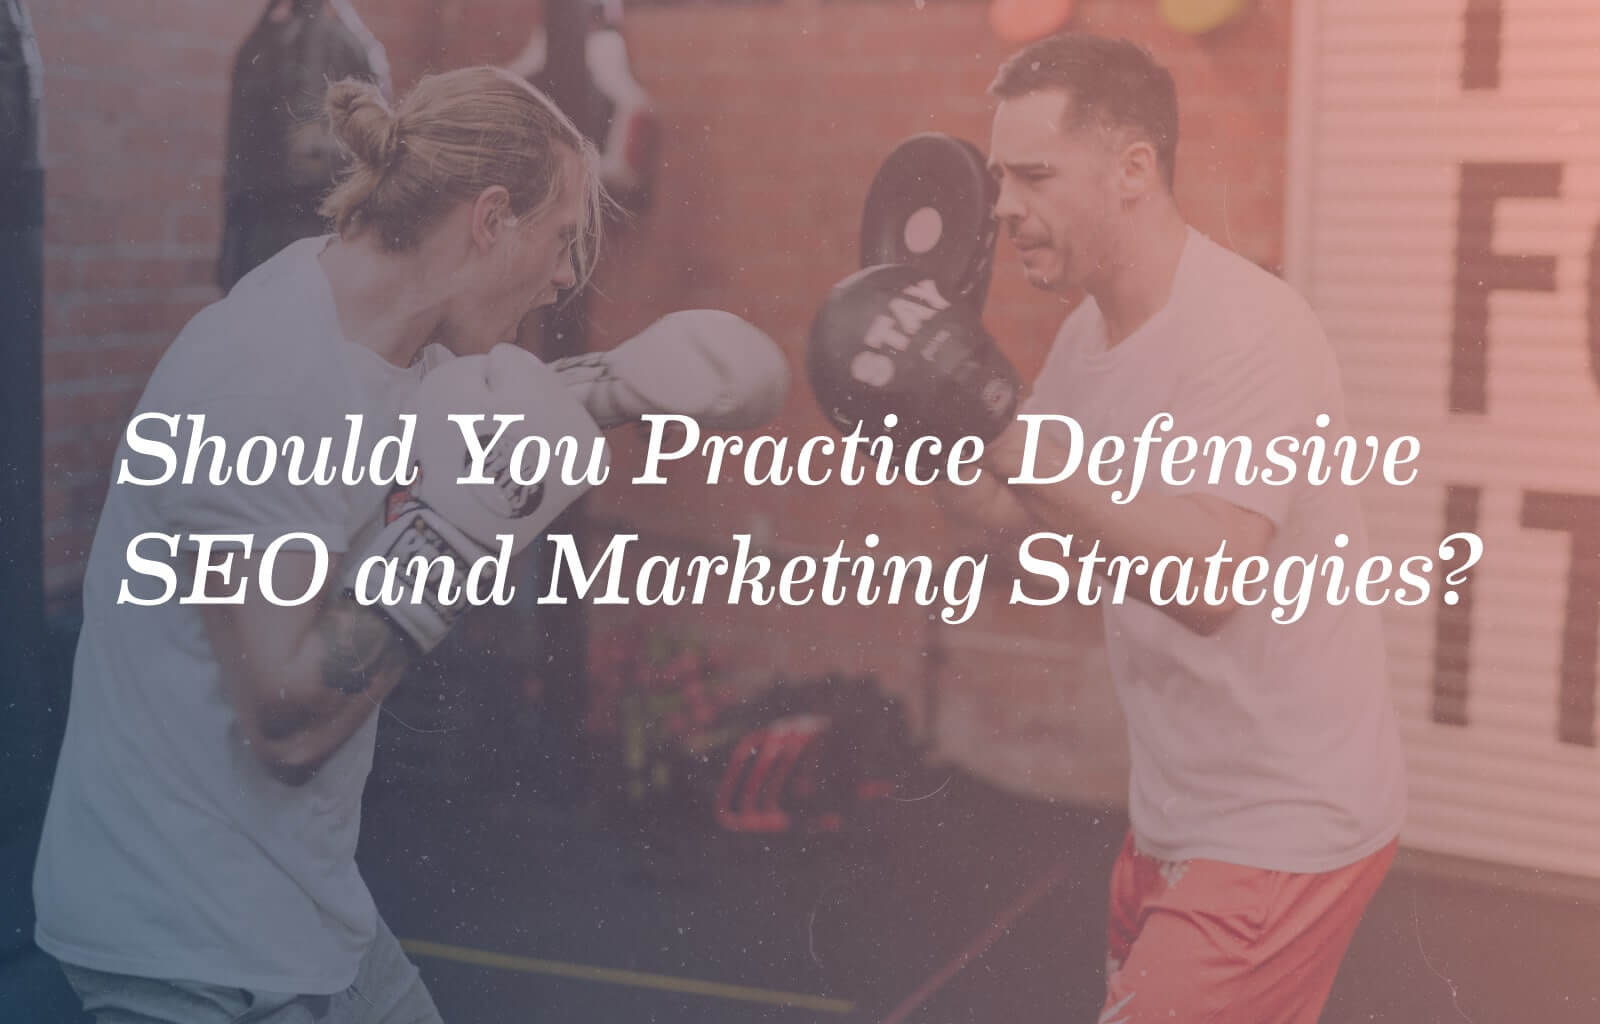 Should You Practice Defensive SEO and Marketing Strategies